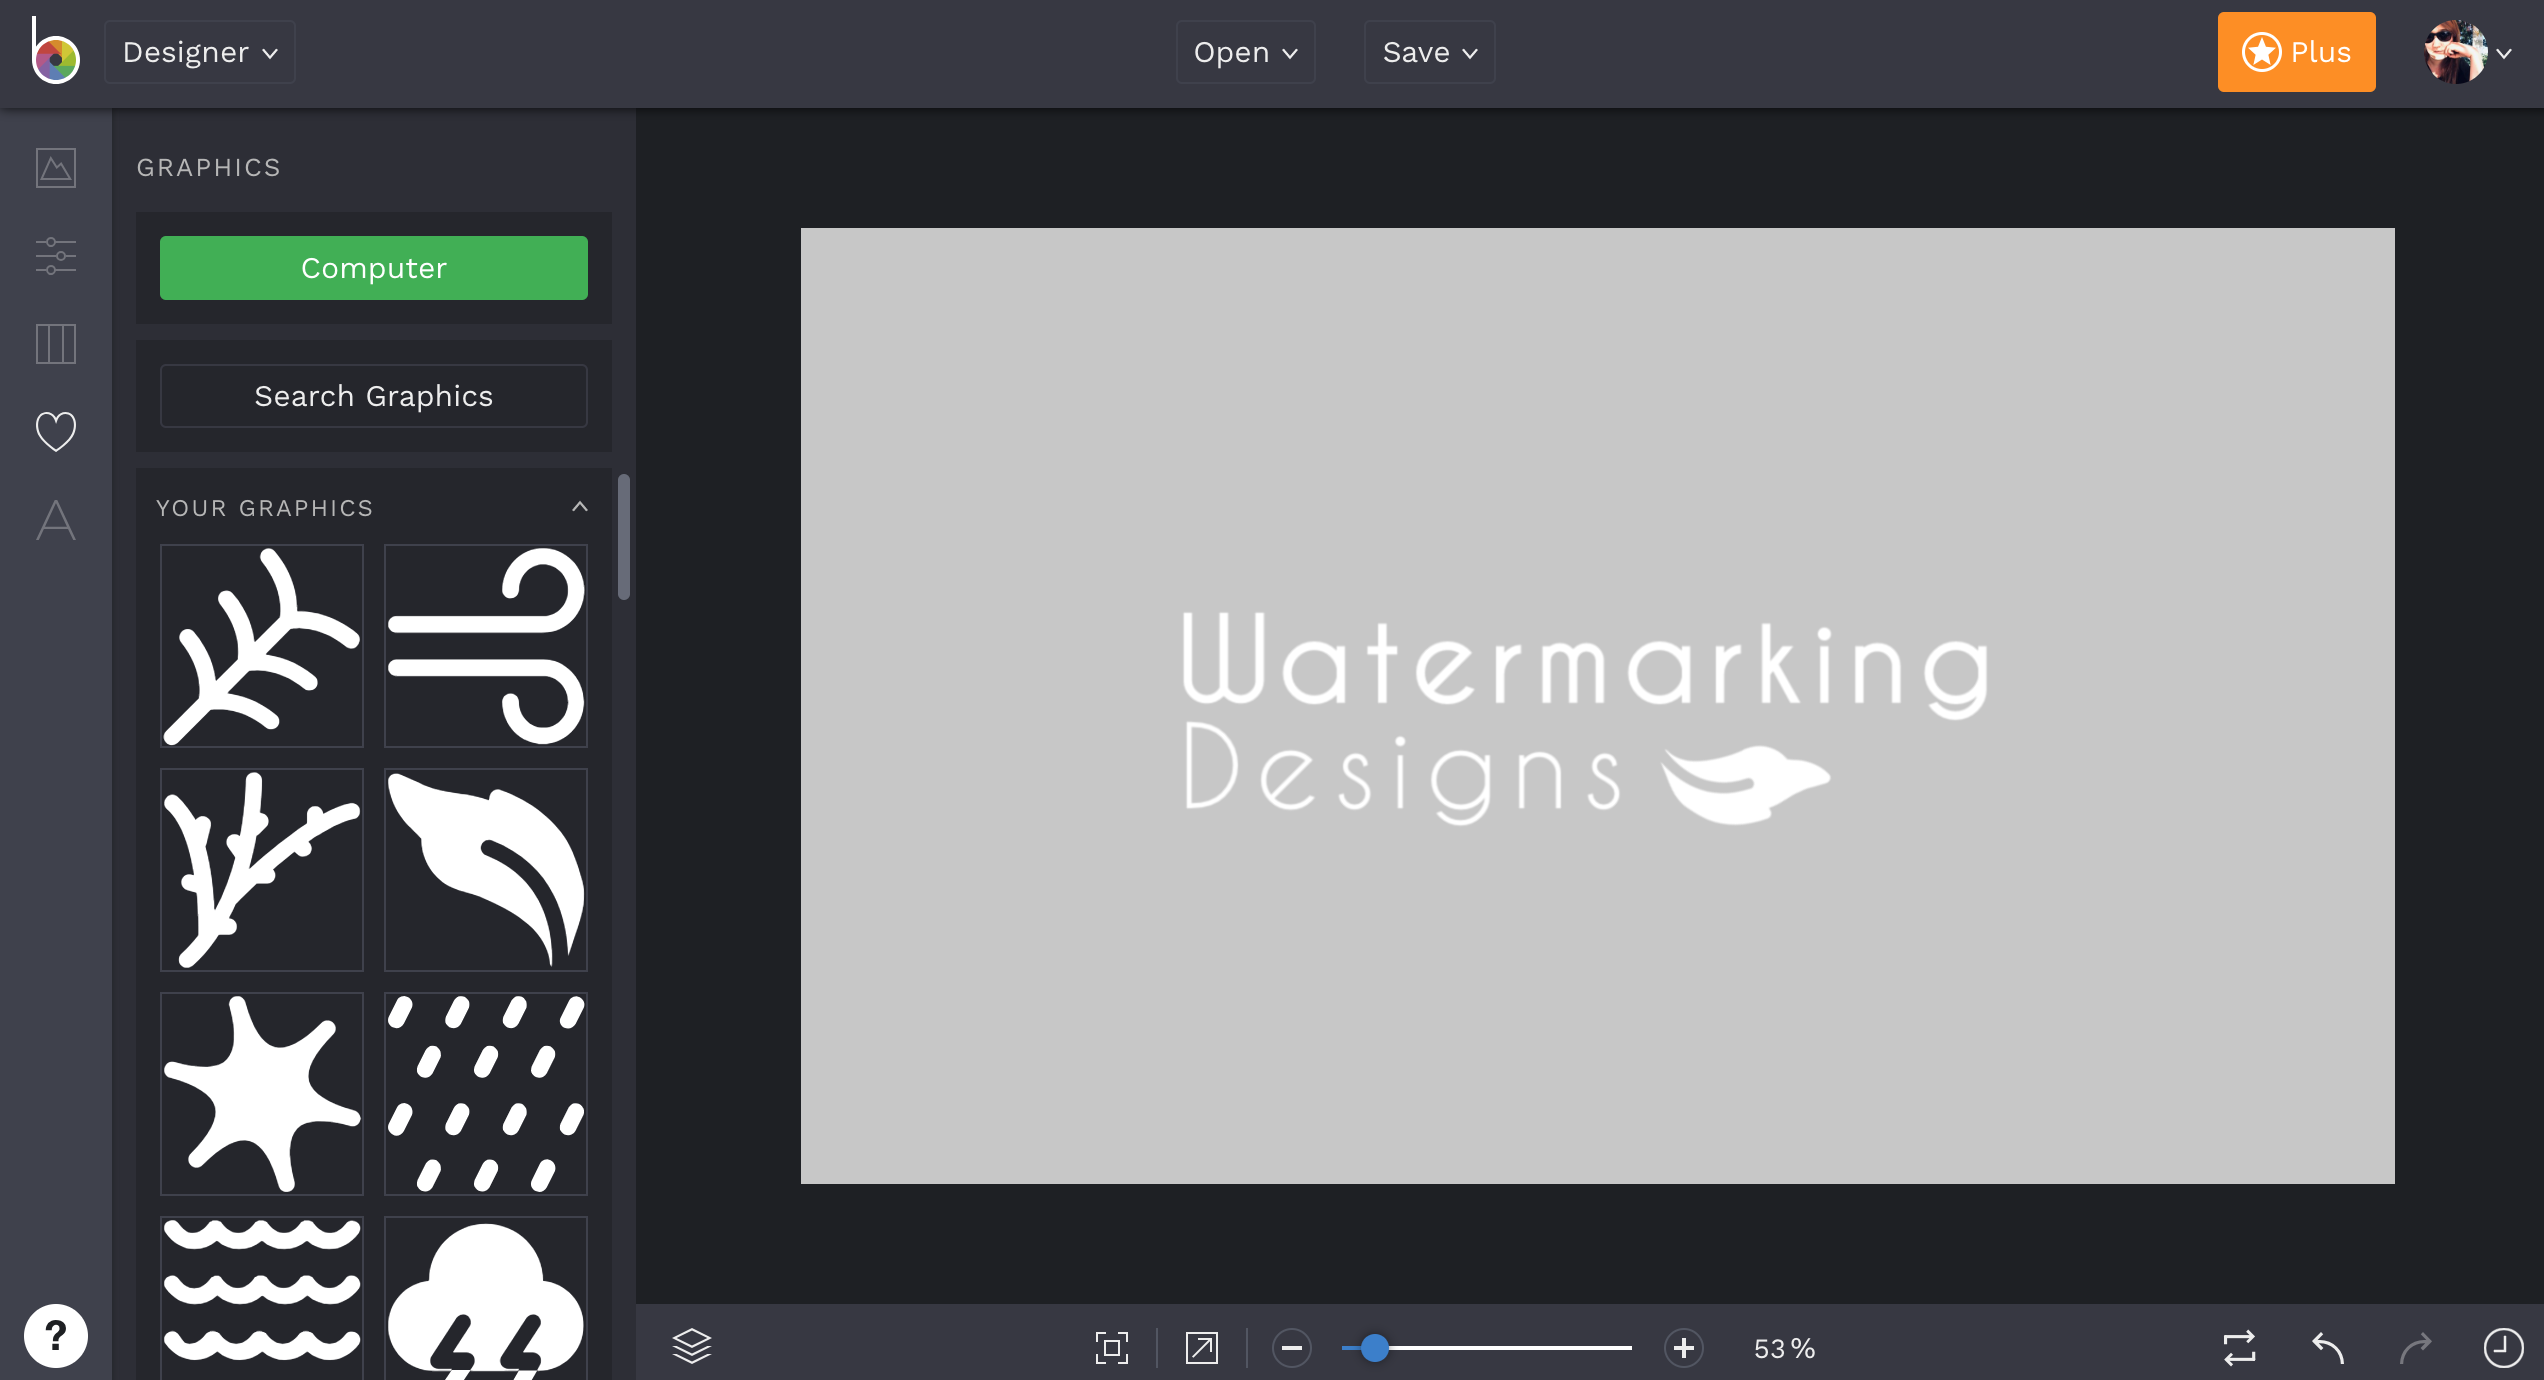 Customize your Watermark